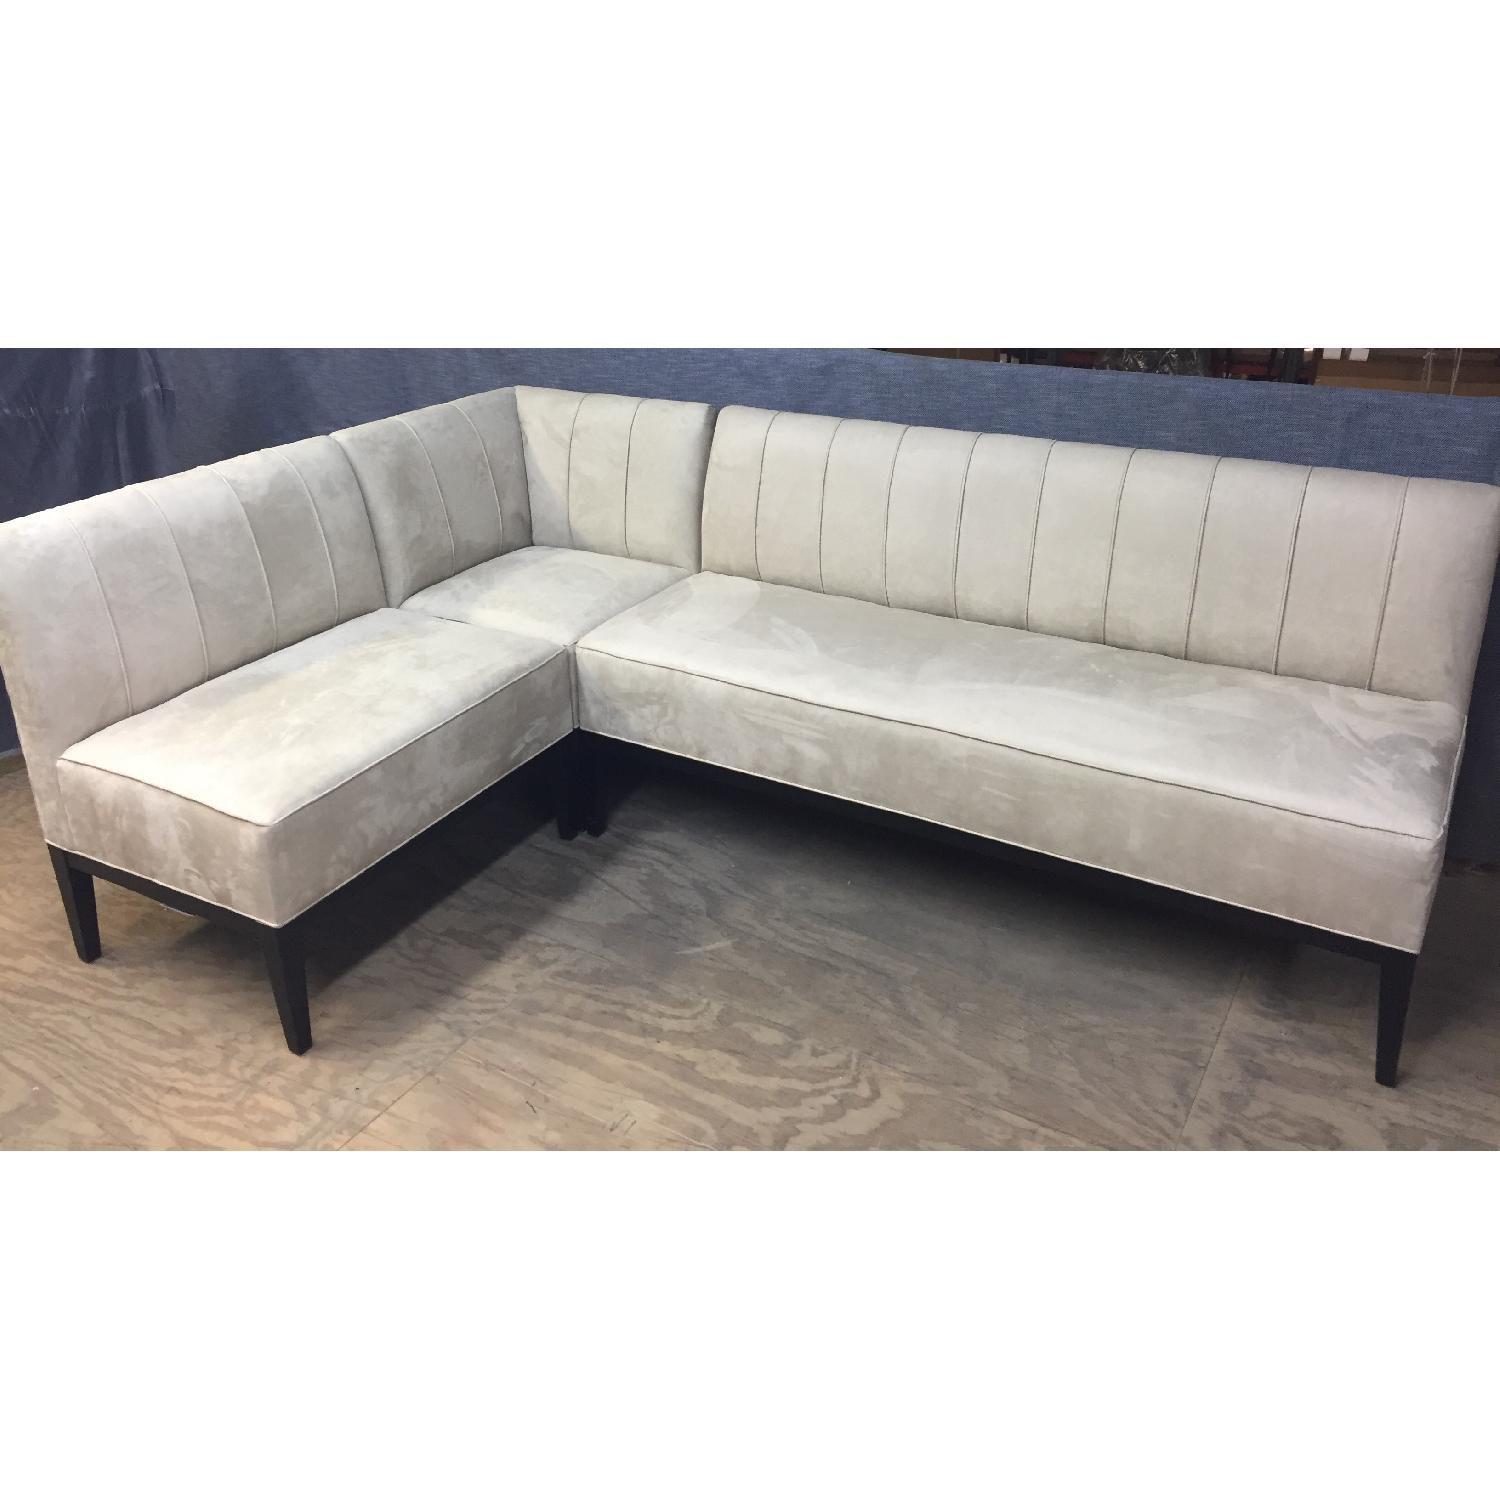 Suede Leather 3-Piece Sectional Sofa